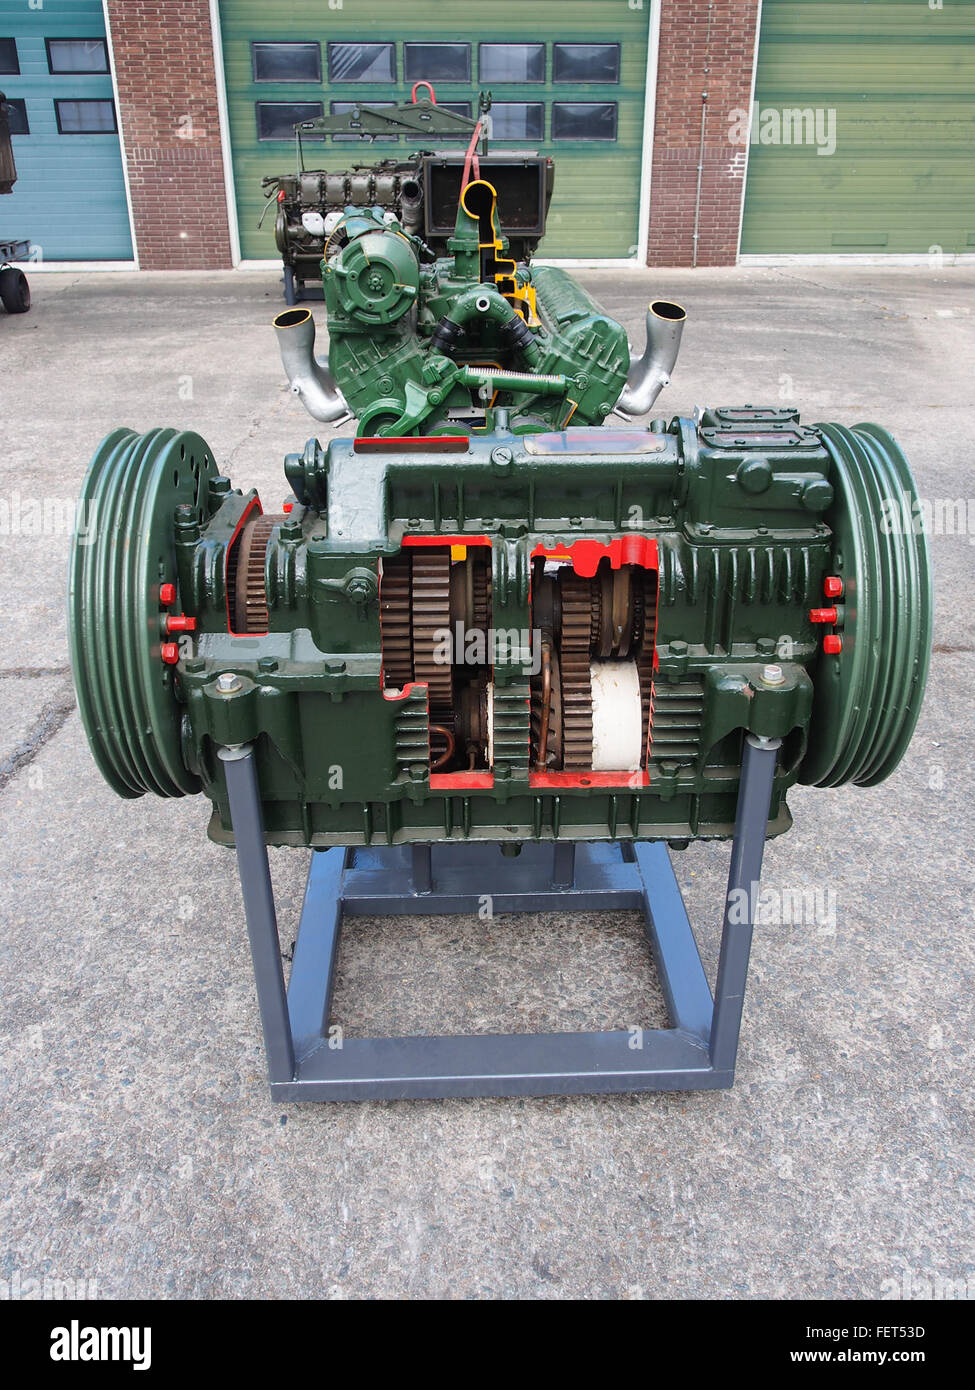 Centurion tank engine and transmission pic3 - Stock Image